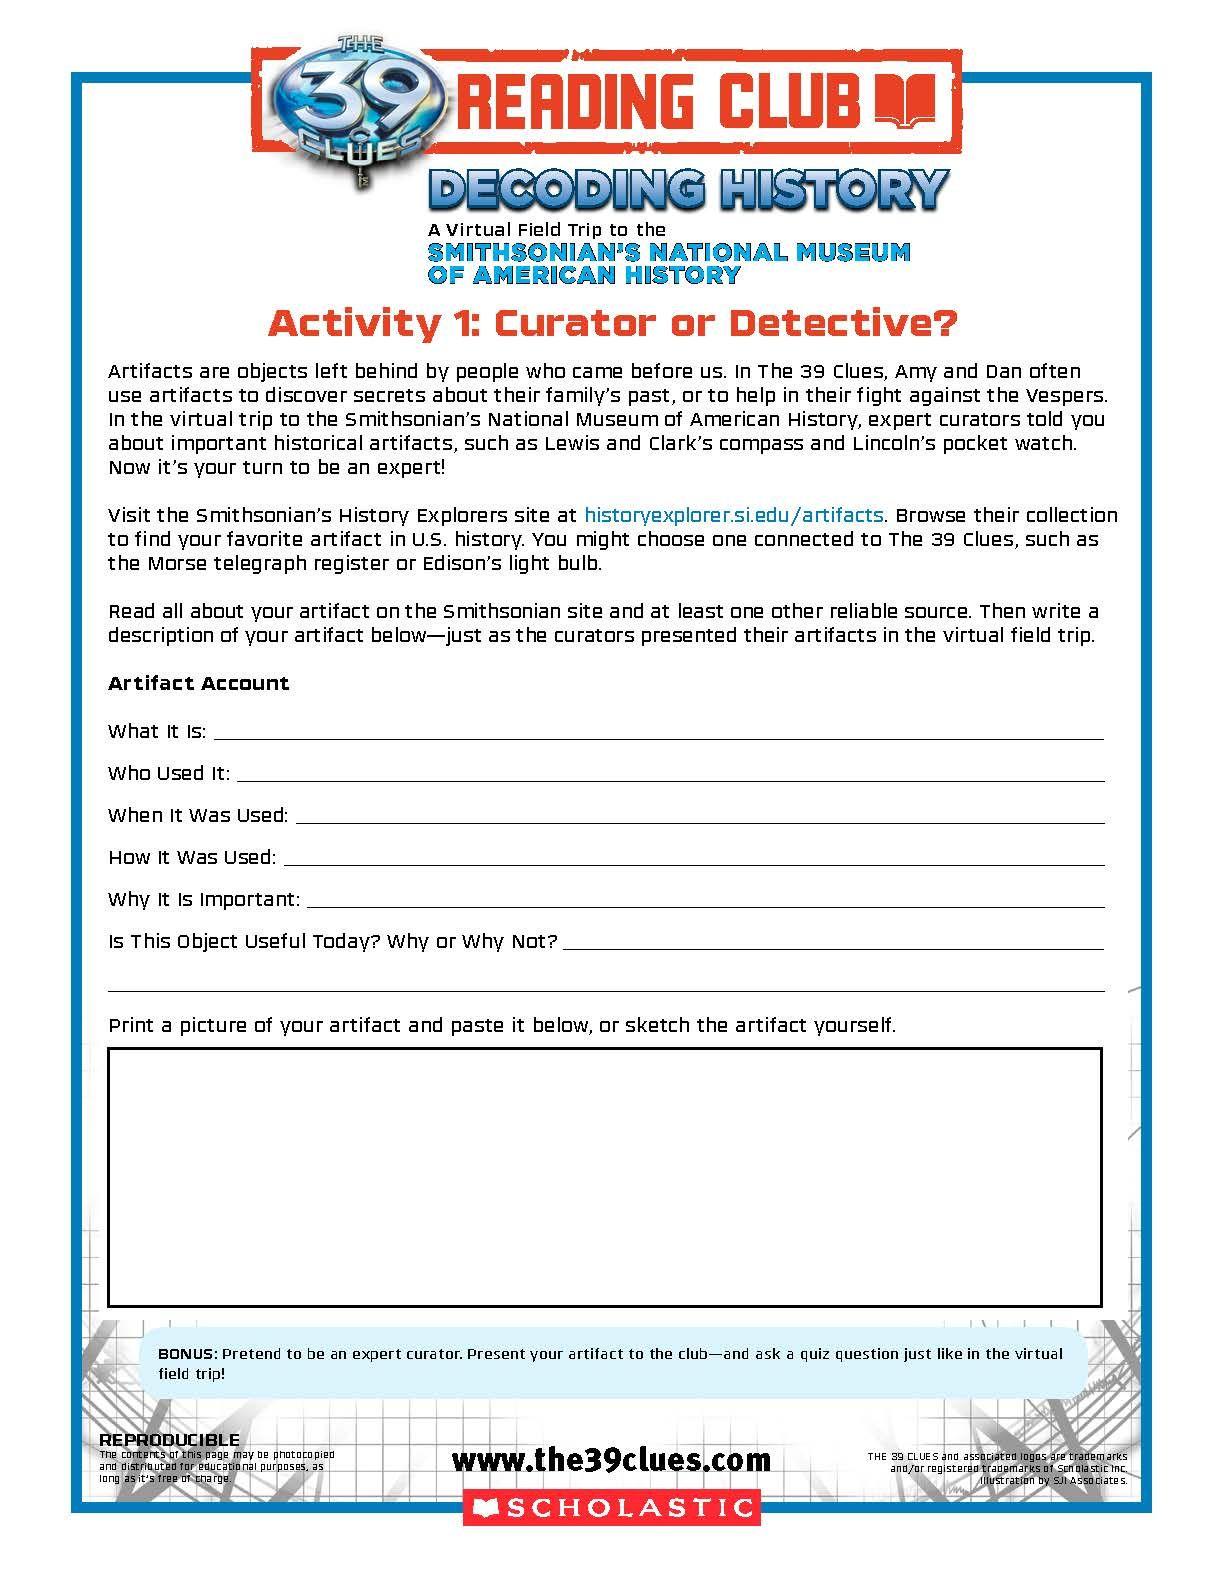 Free Common Core Ready Activity Sheet Based On Decoding